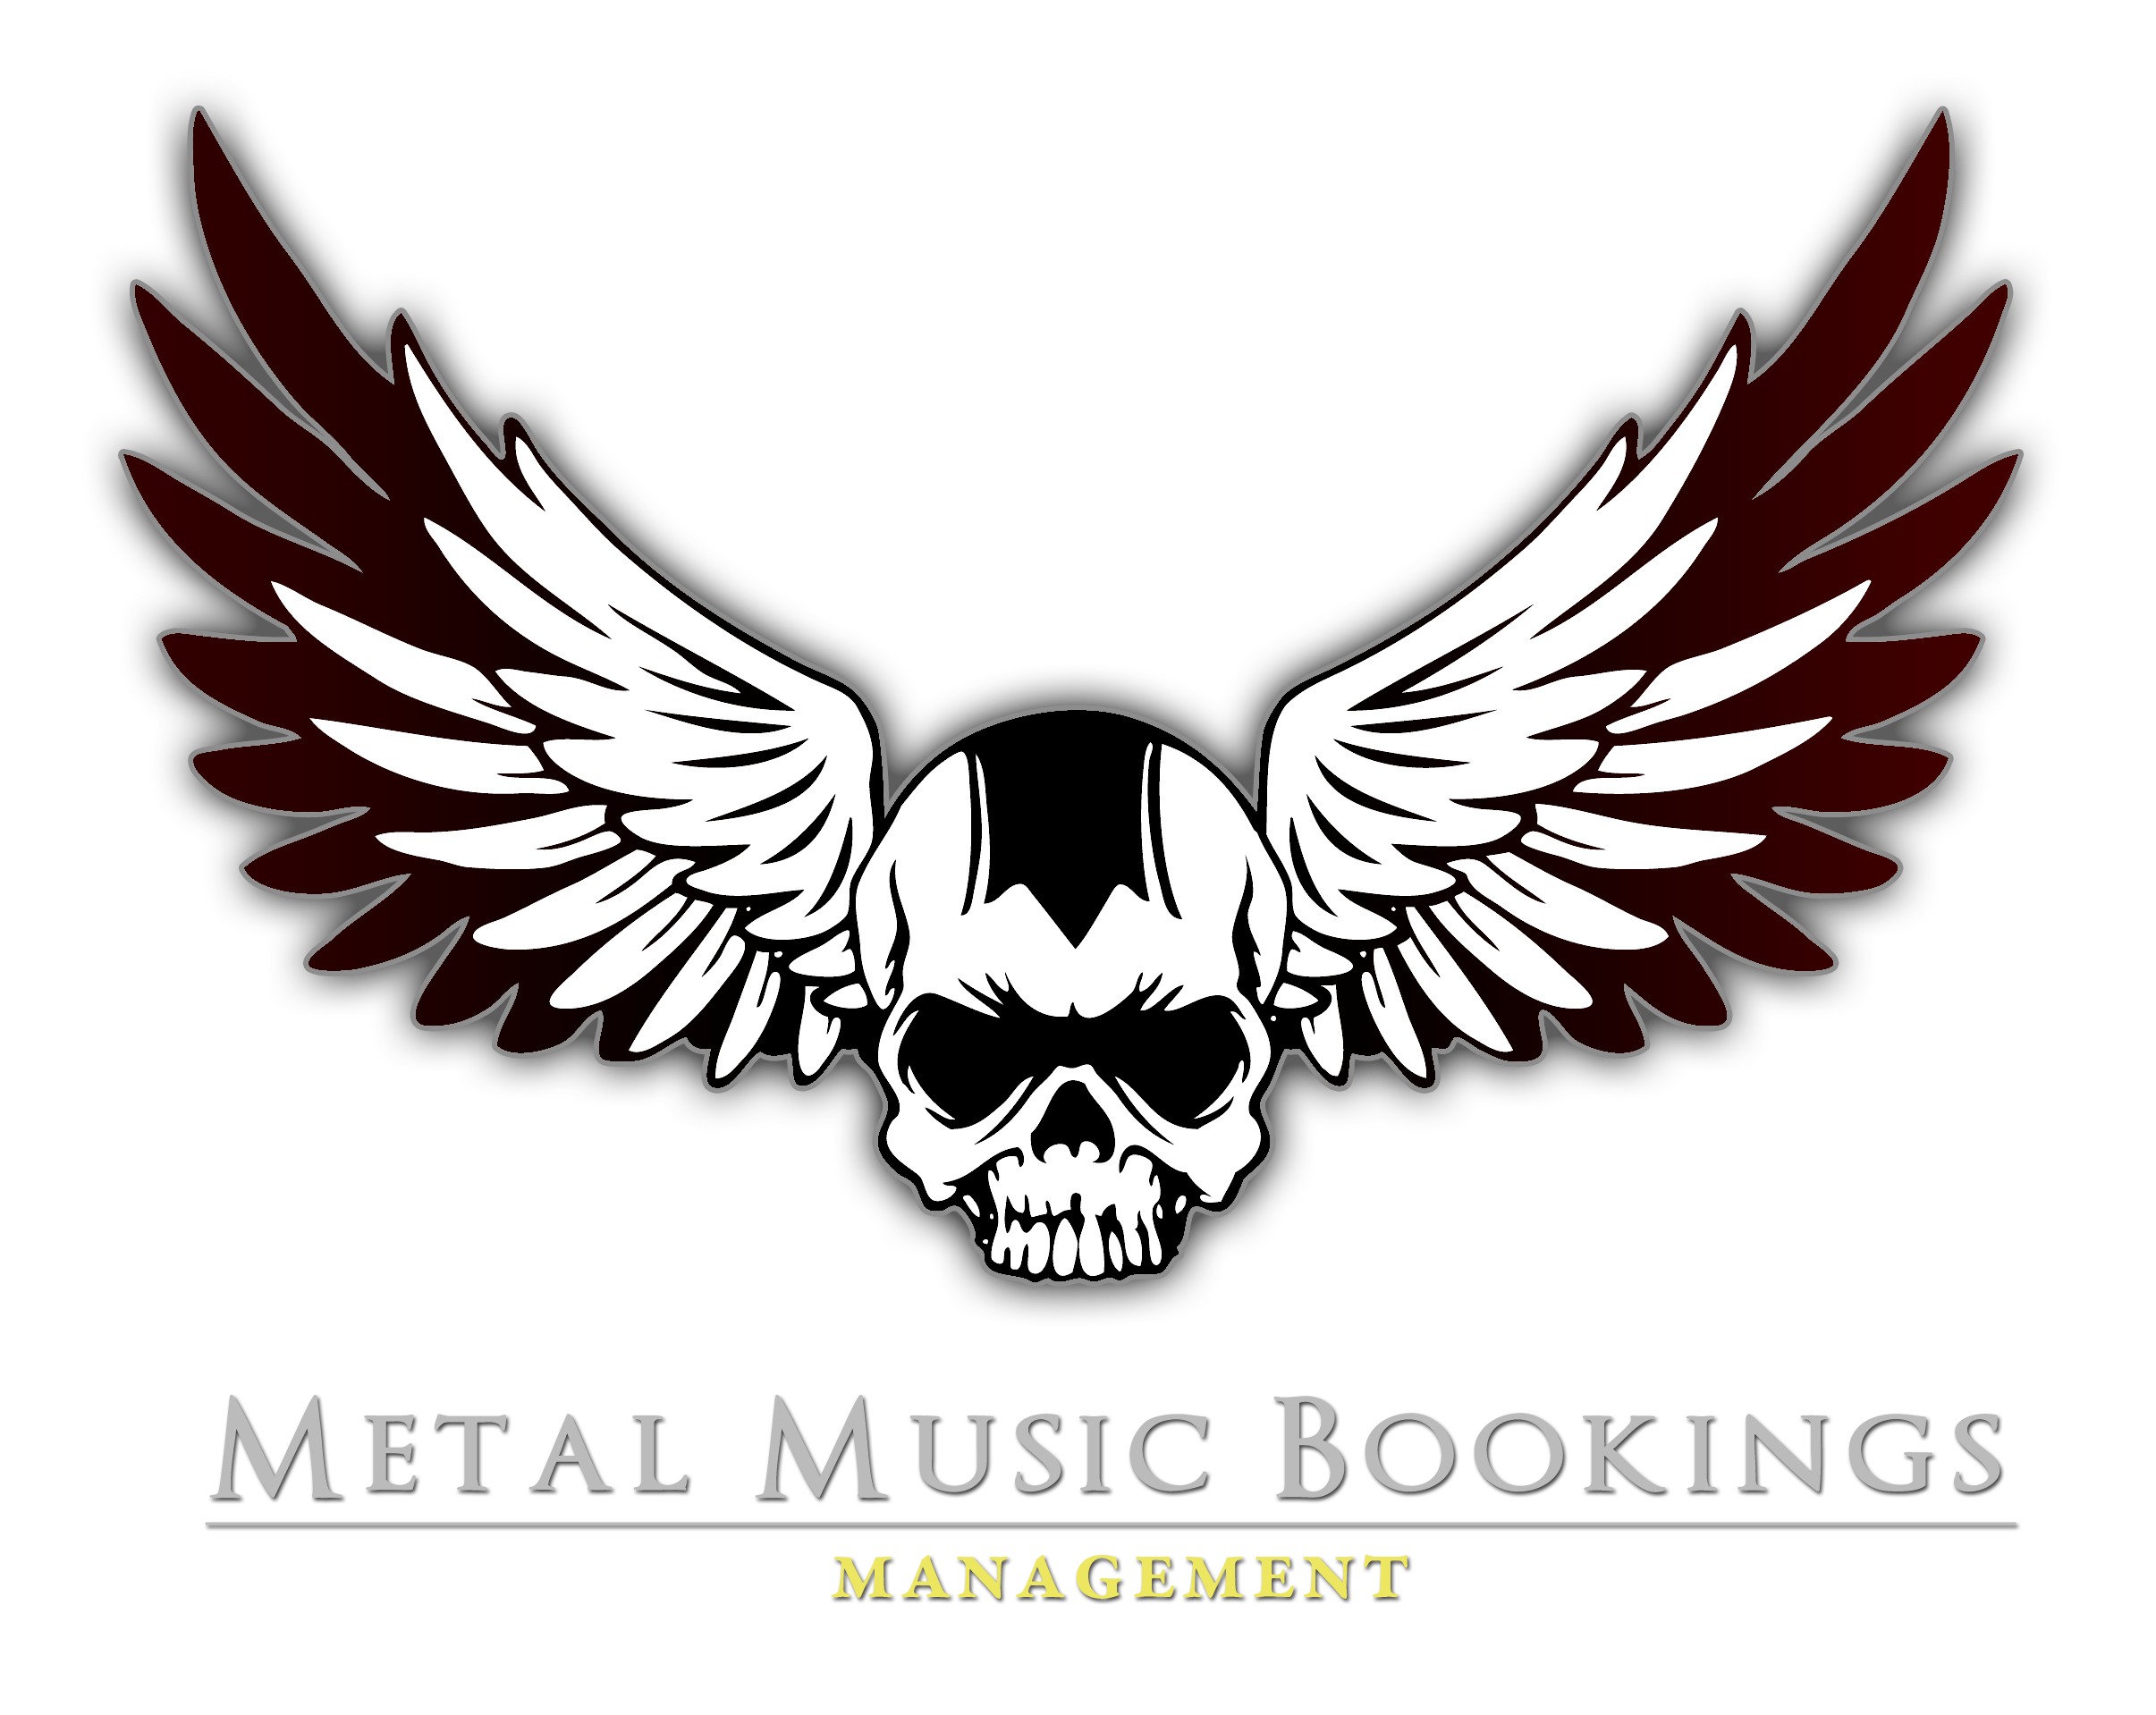 Metal Music Bookings